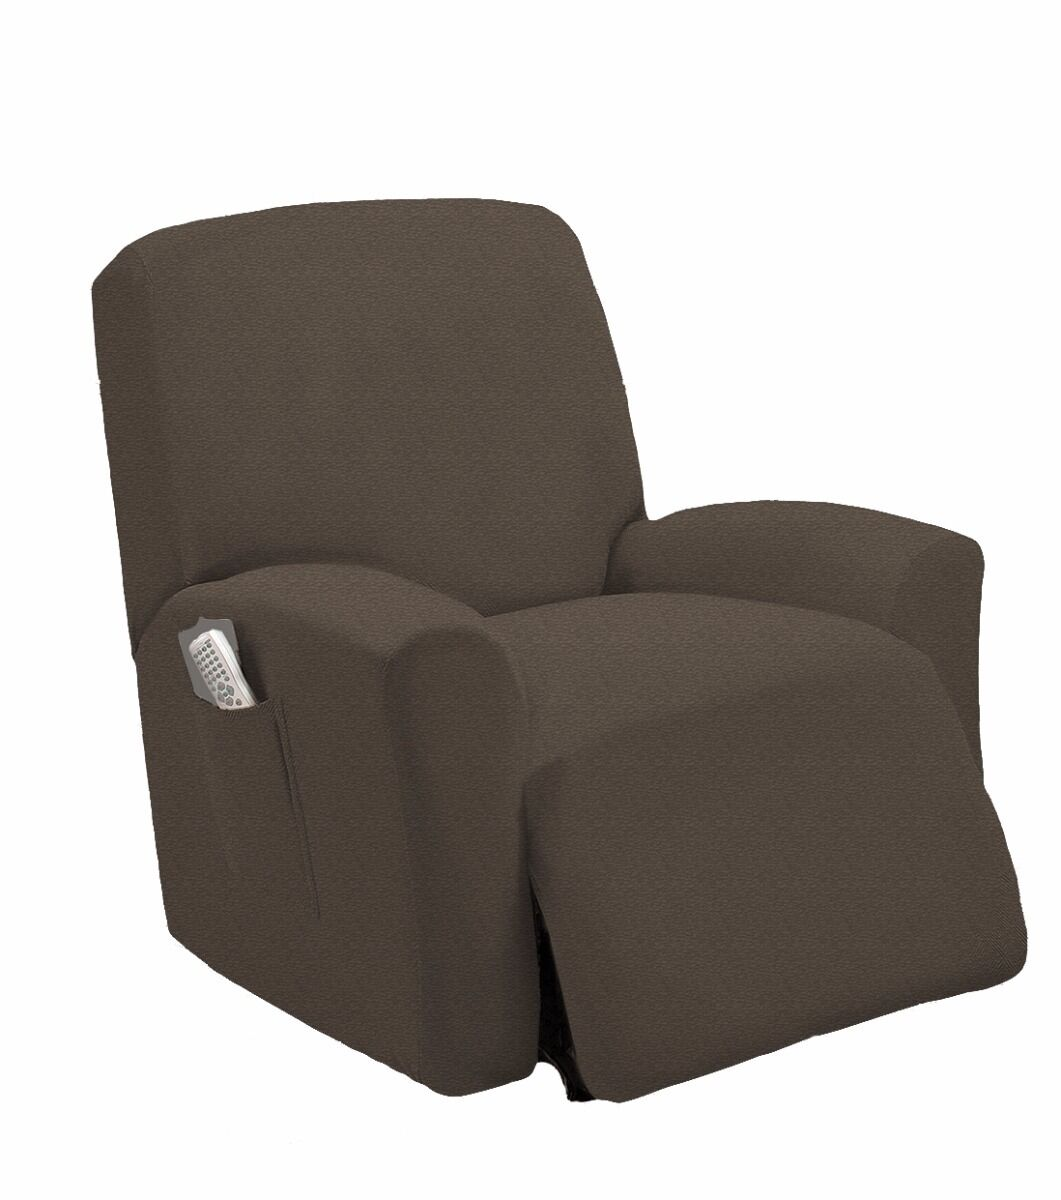 Stretch fit mocha recliner slipcover chair slip cover couch sofa cover picclick uk Slipper loveseat